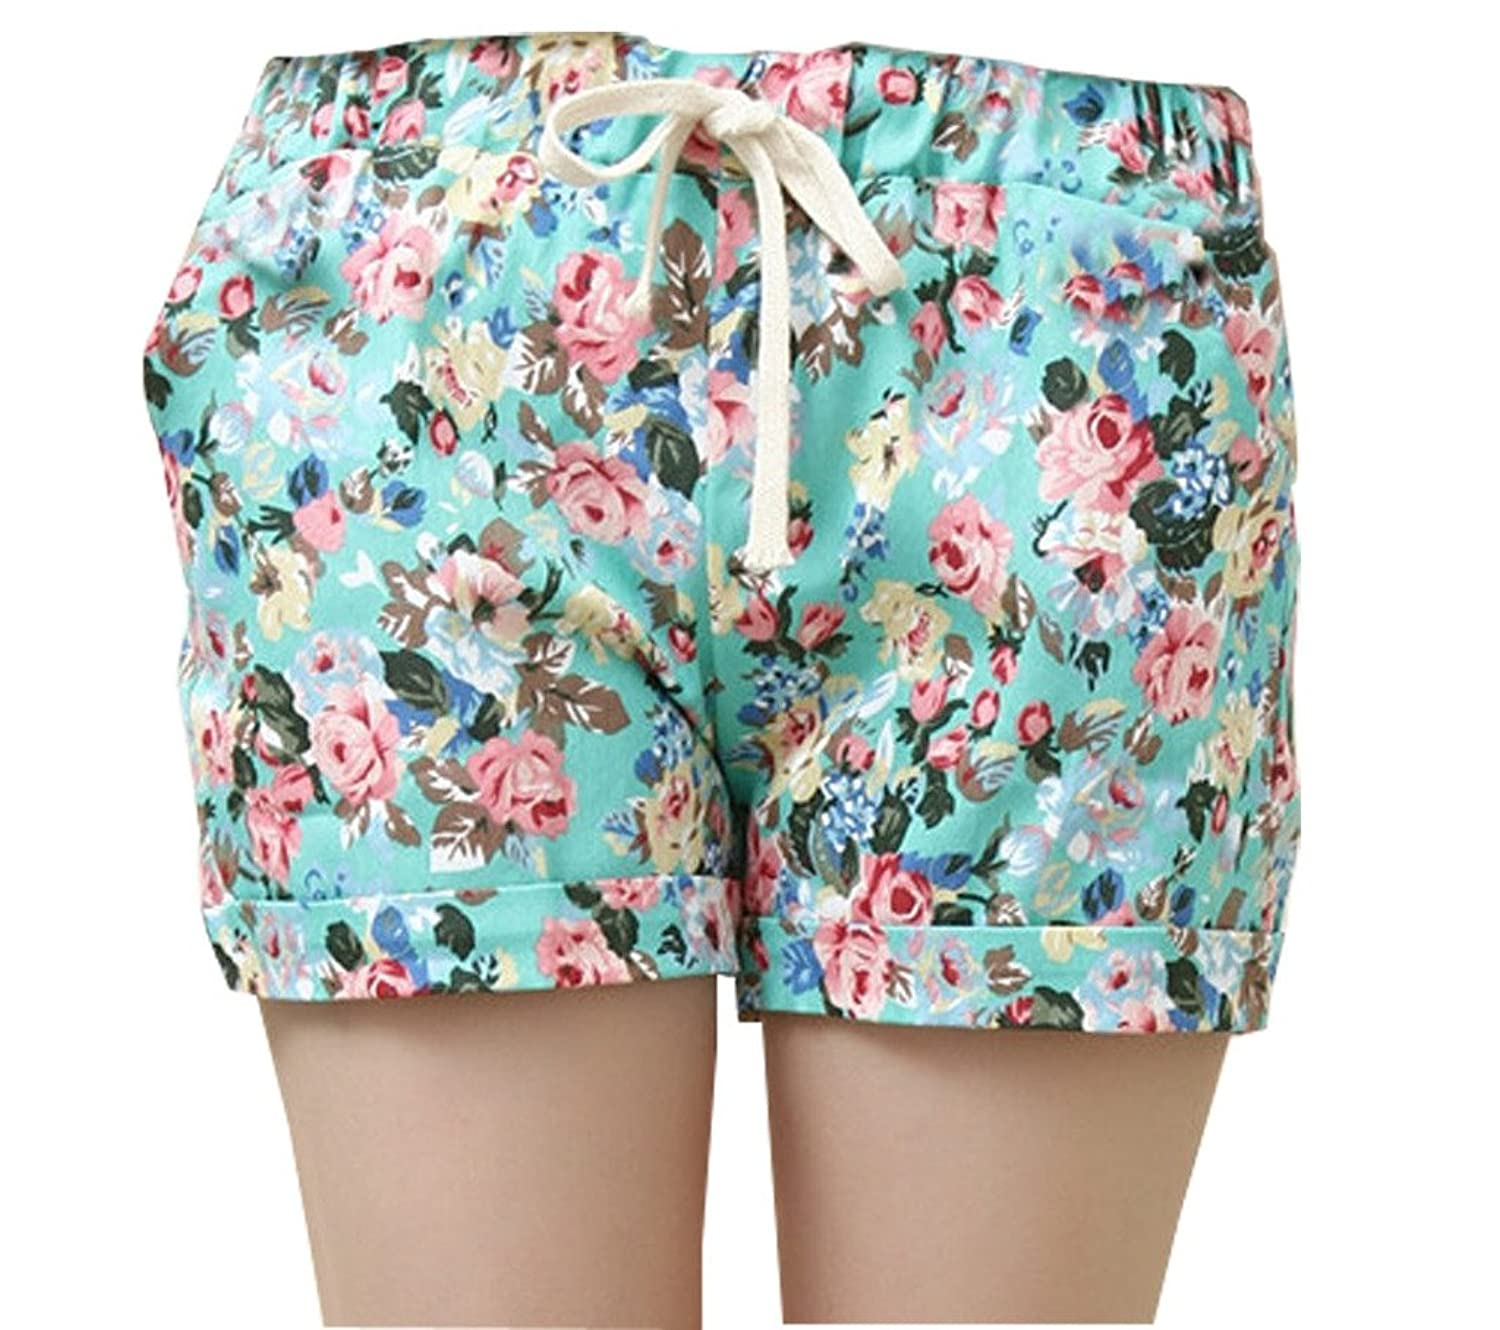 Girls Vintage Floral Print Sports Shorts Hot Pants Beachshorts